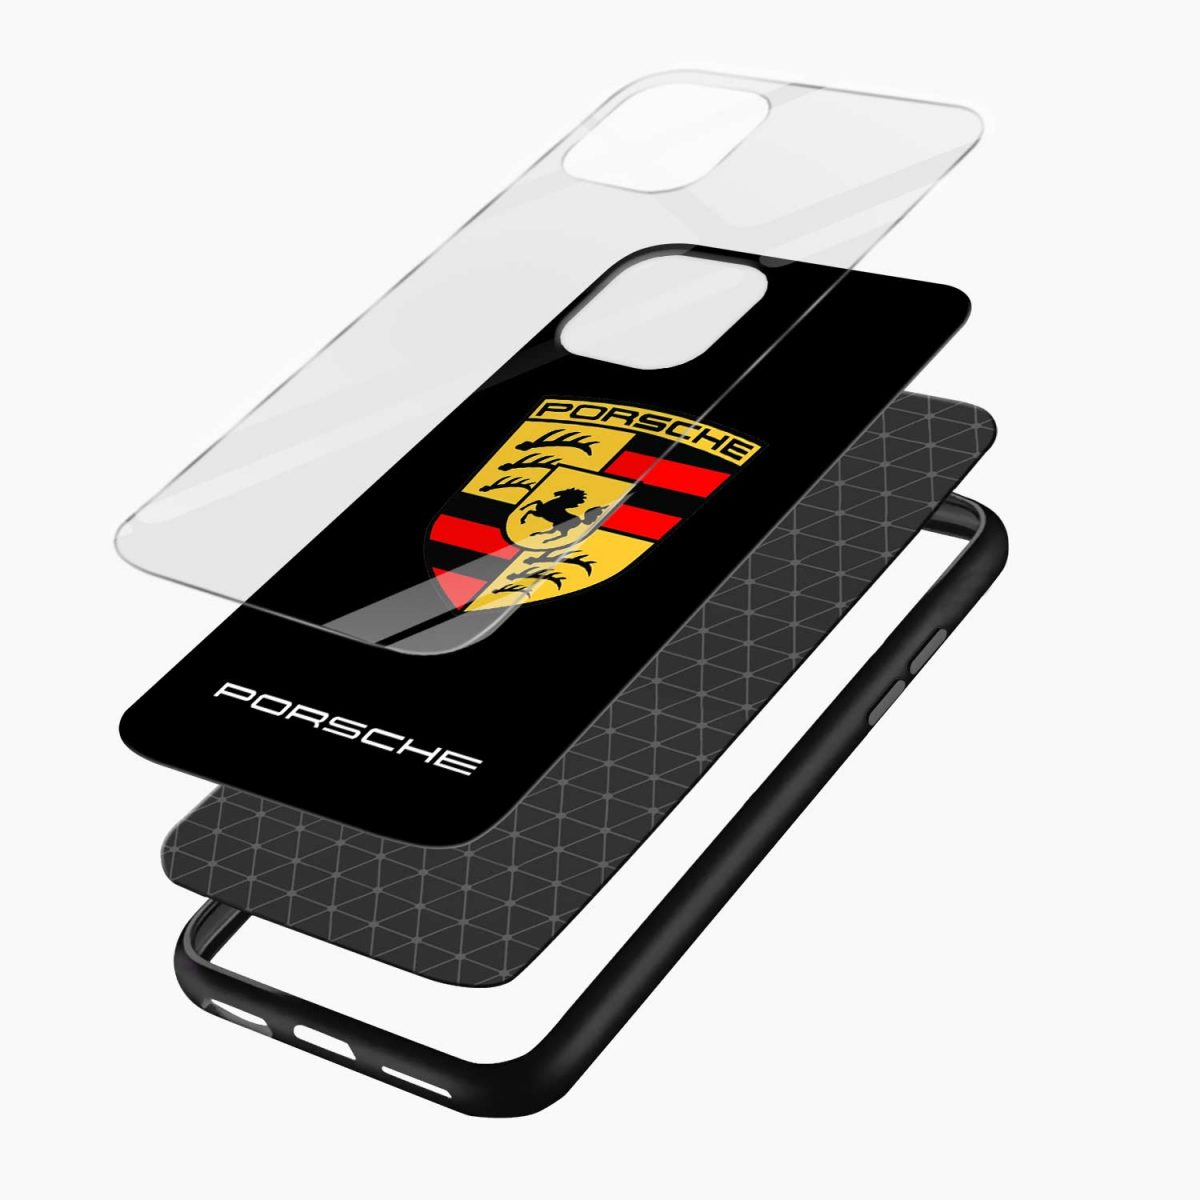 prosche iphone pro back cover layers view